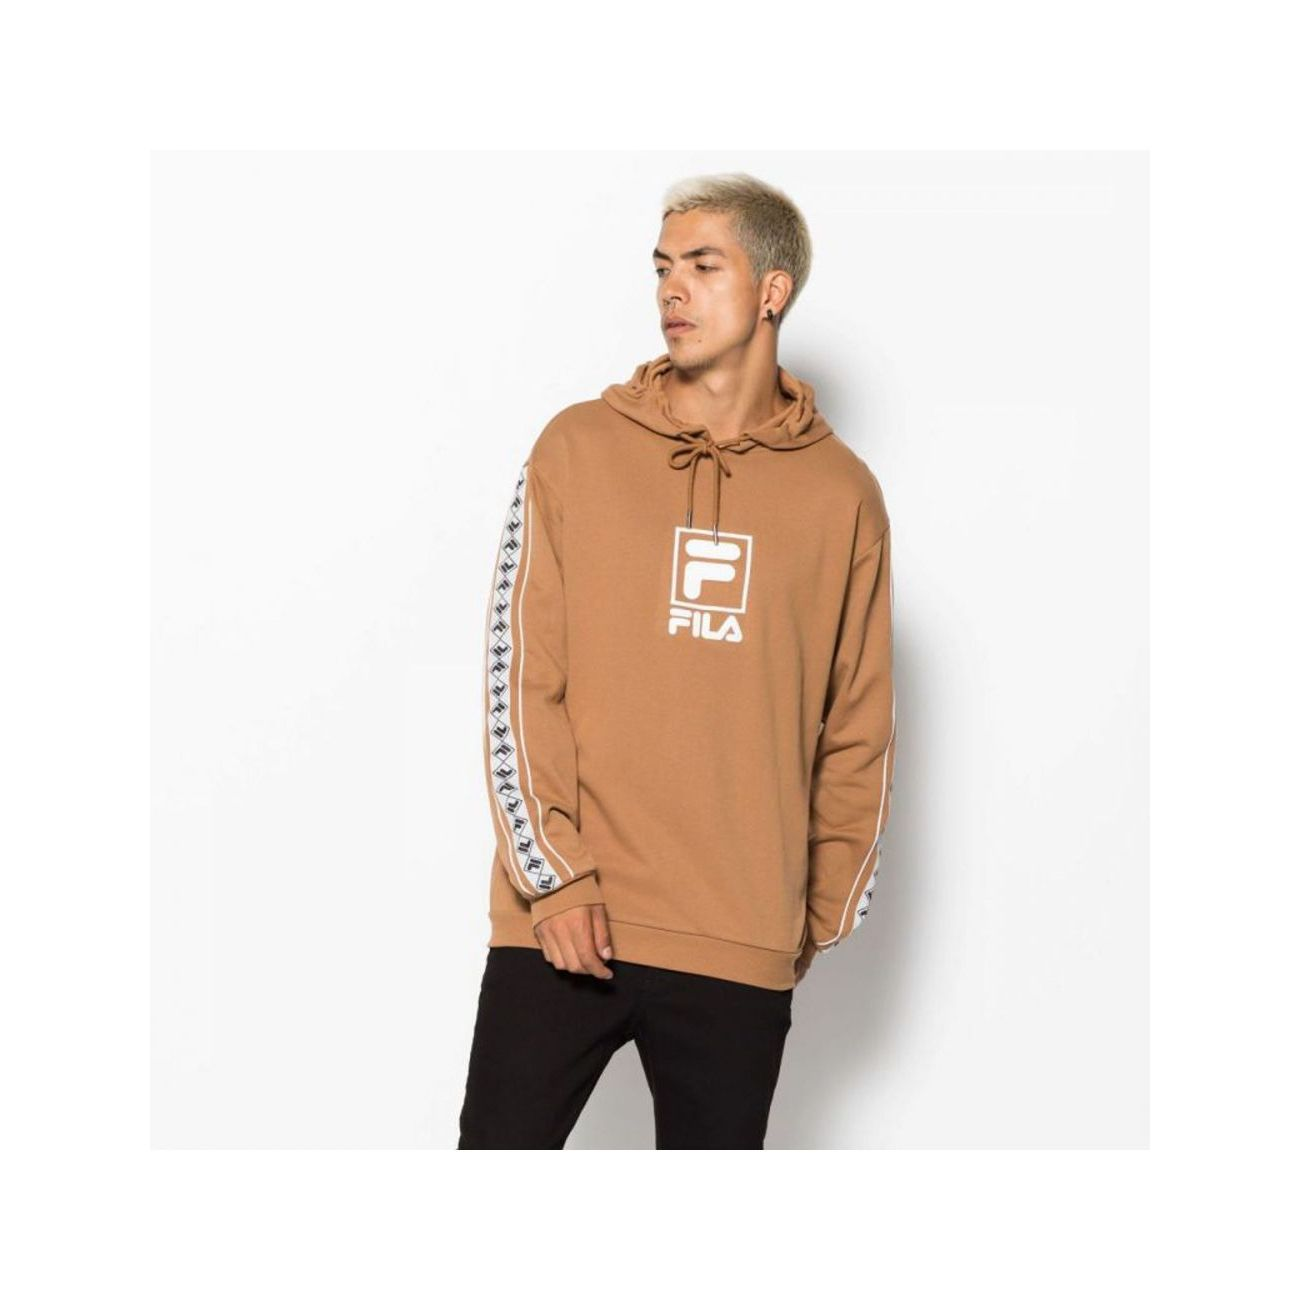 mode homme FILA Sweat à capuche bandes RANGLE